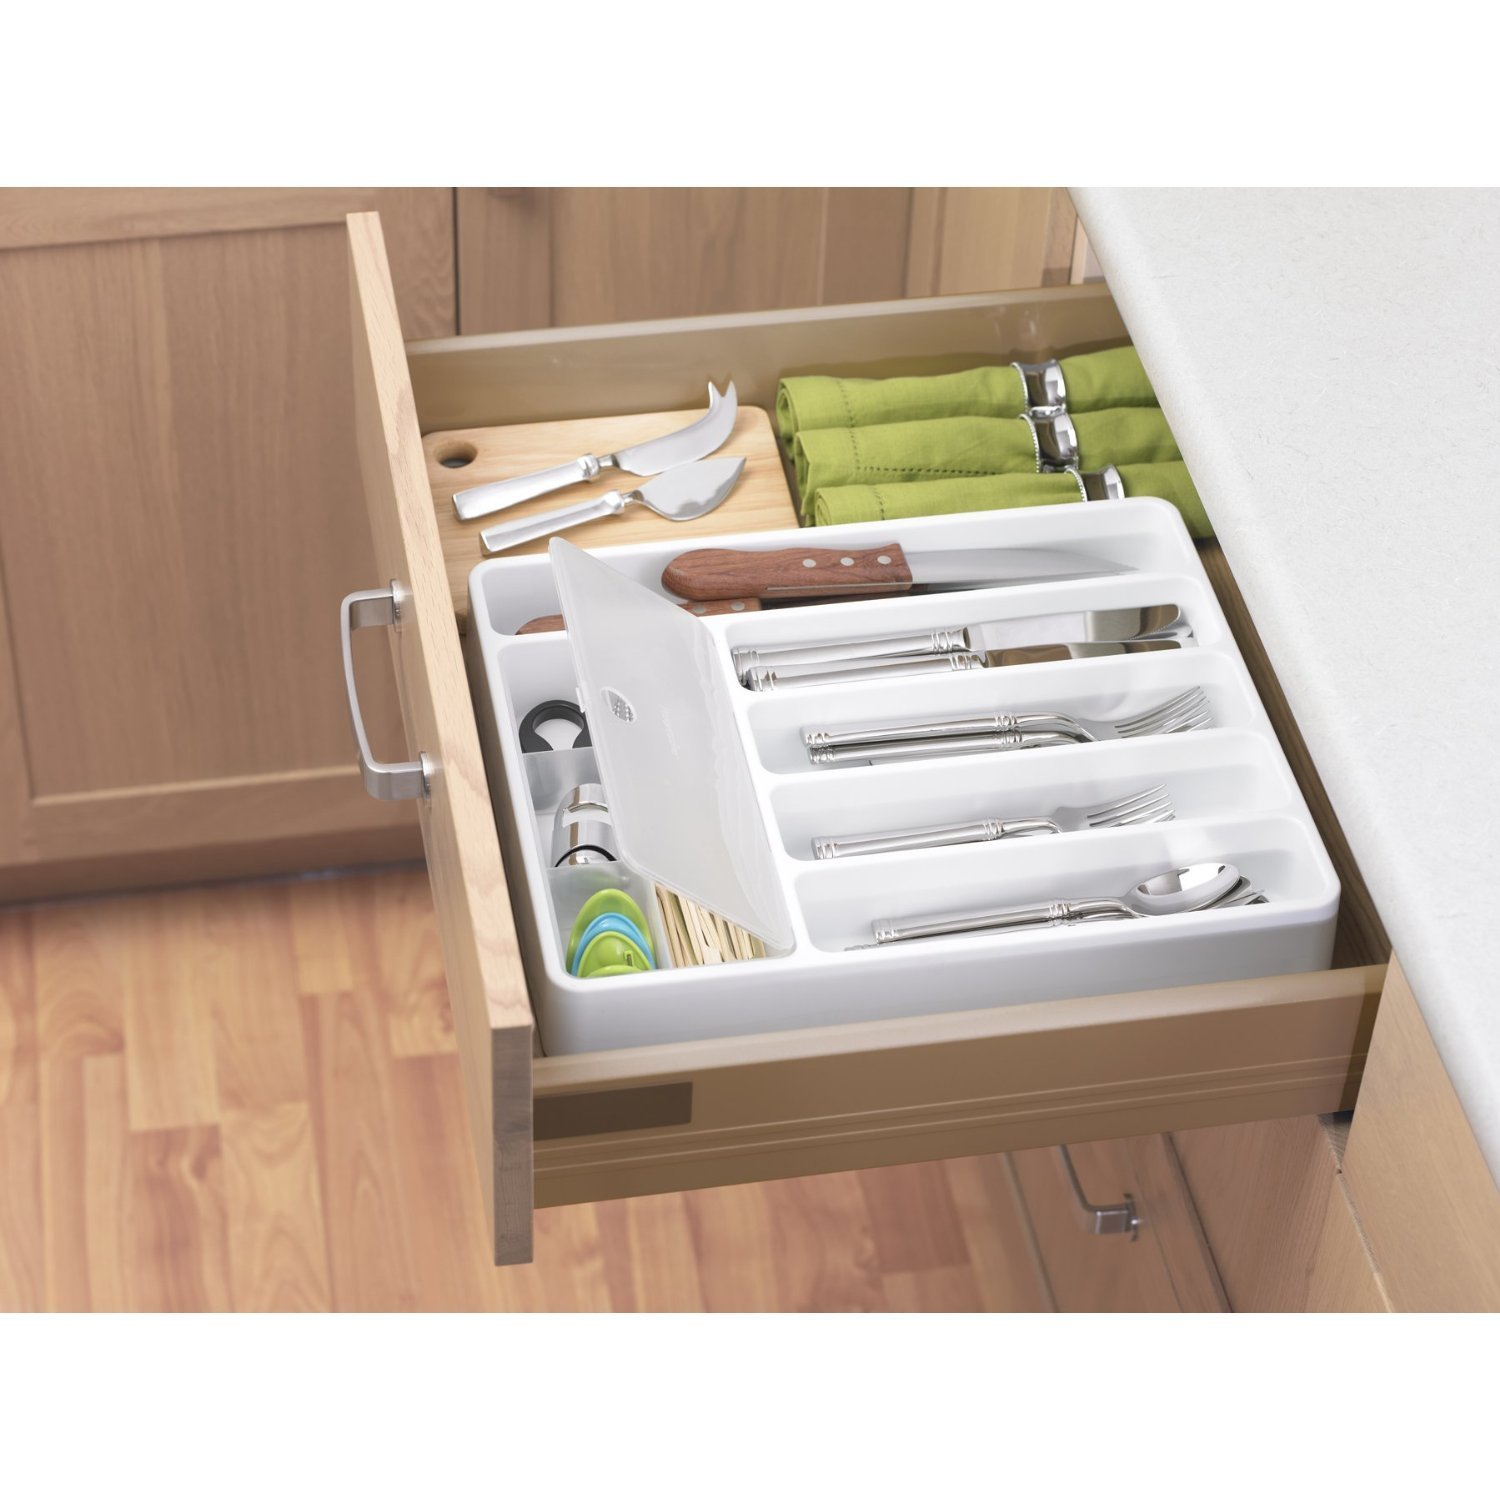 Progressive dcfb 1215 flatware organizer caddy with for Box for flatware storage